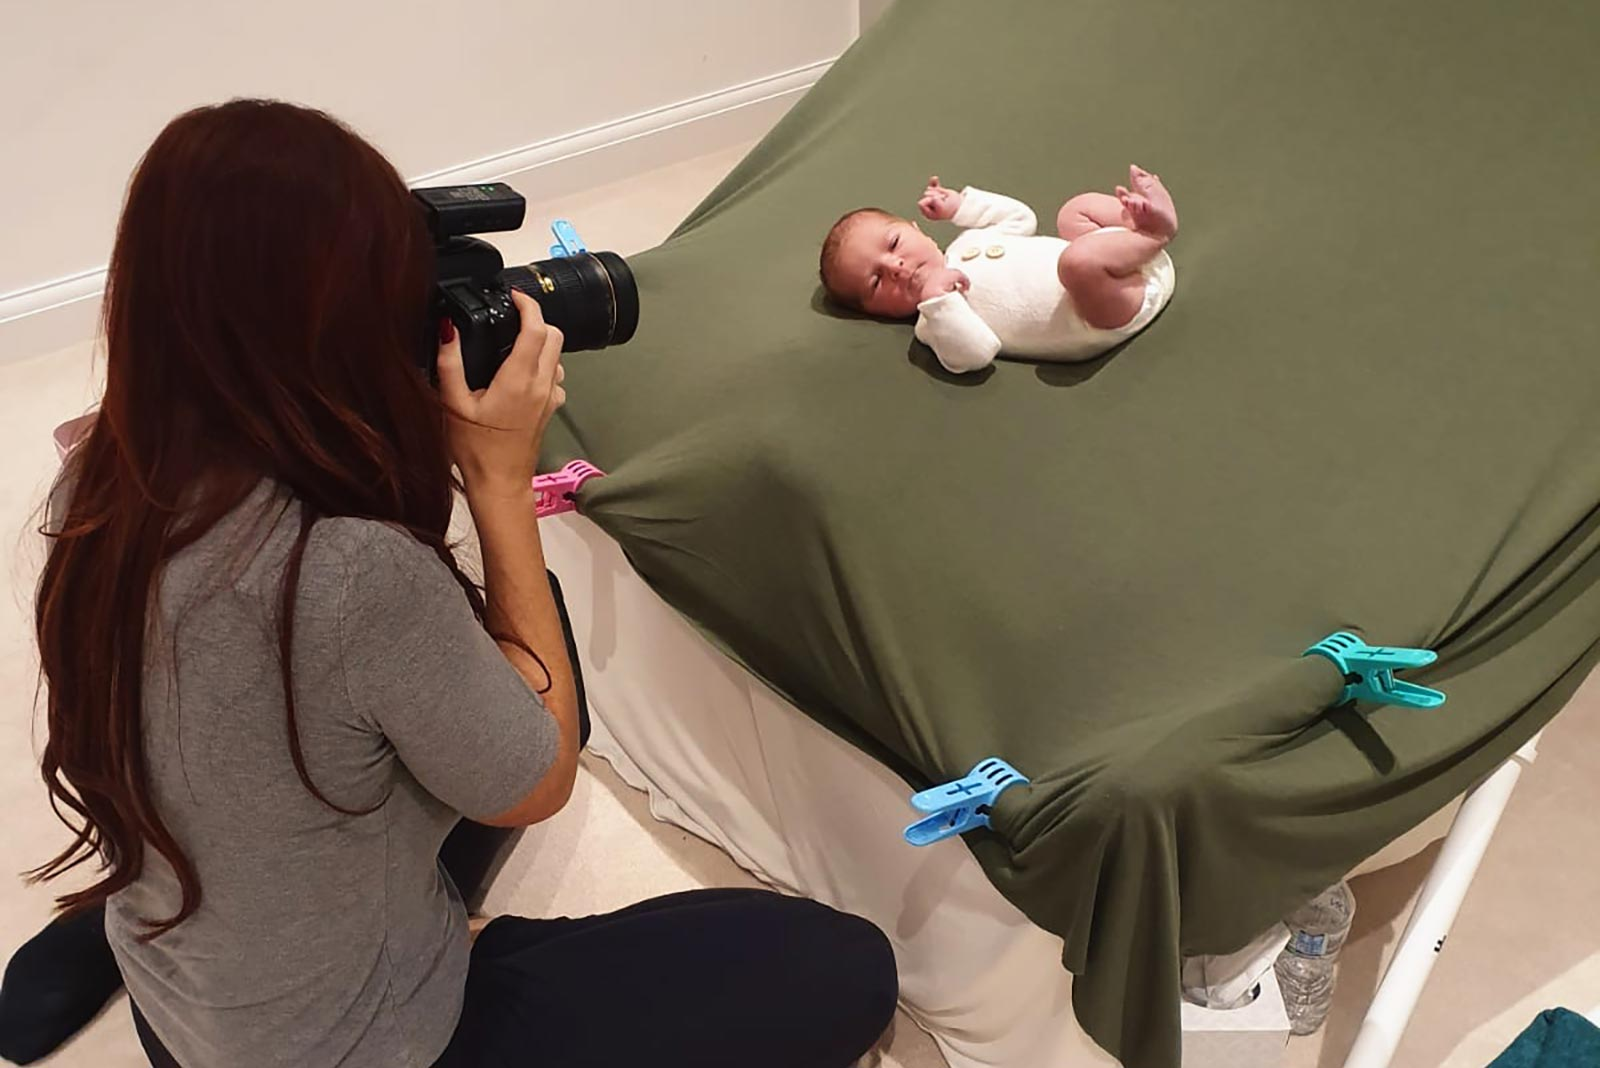 Baby photographer in Bromley, Bickley, Orpington, Petts Wood and surrounding areas in Kent